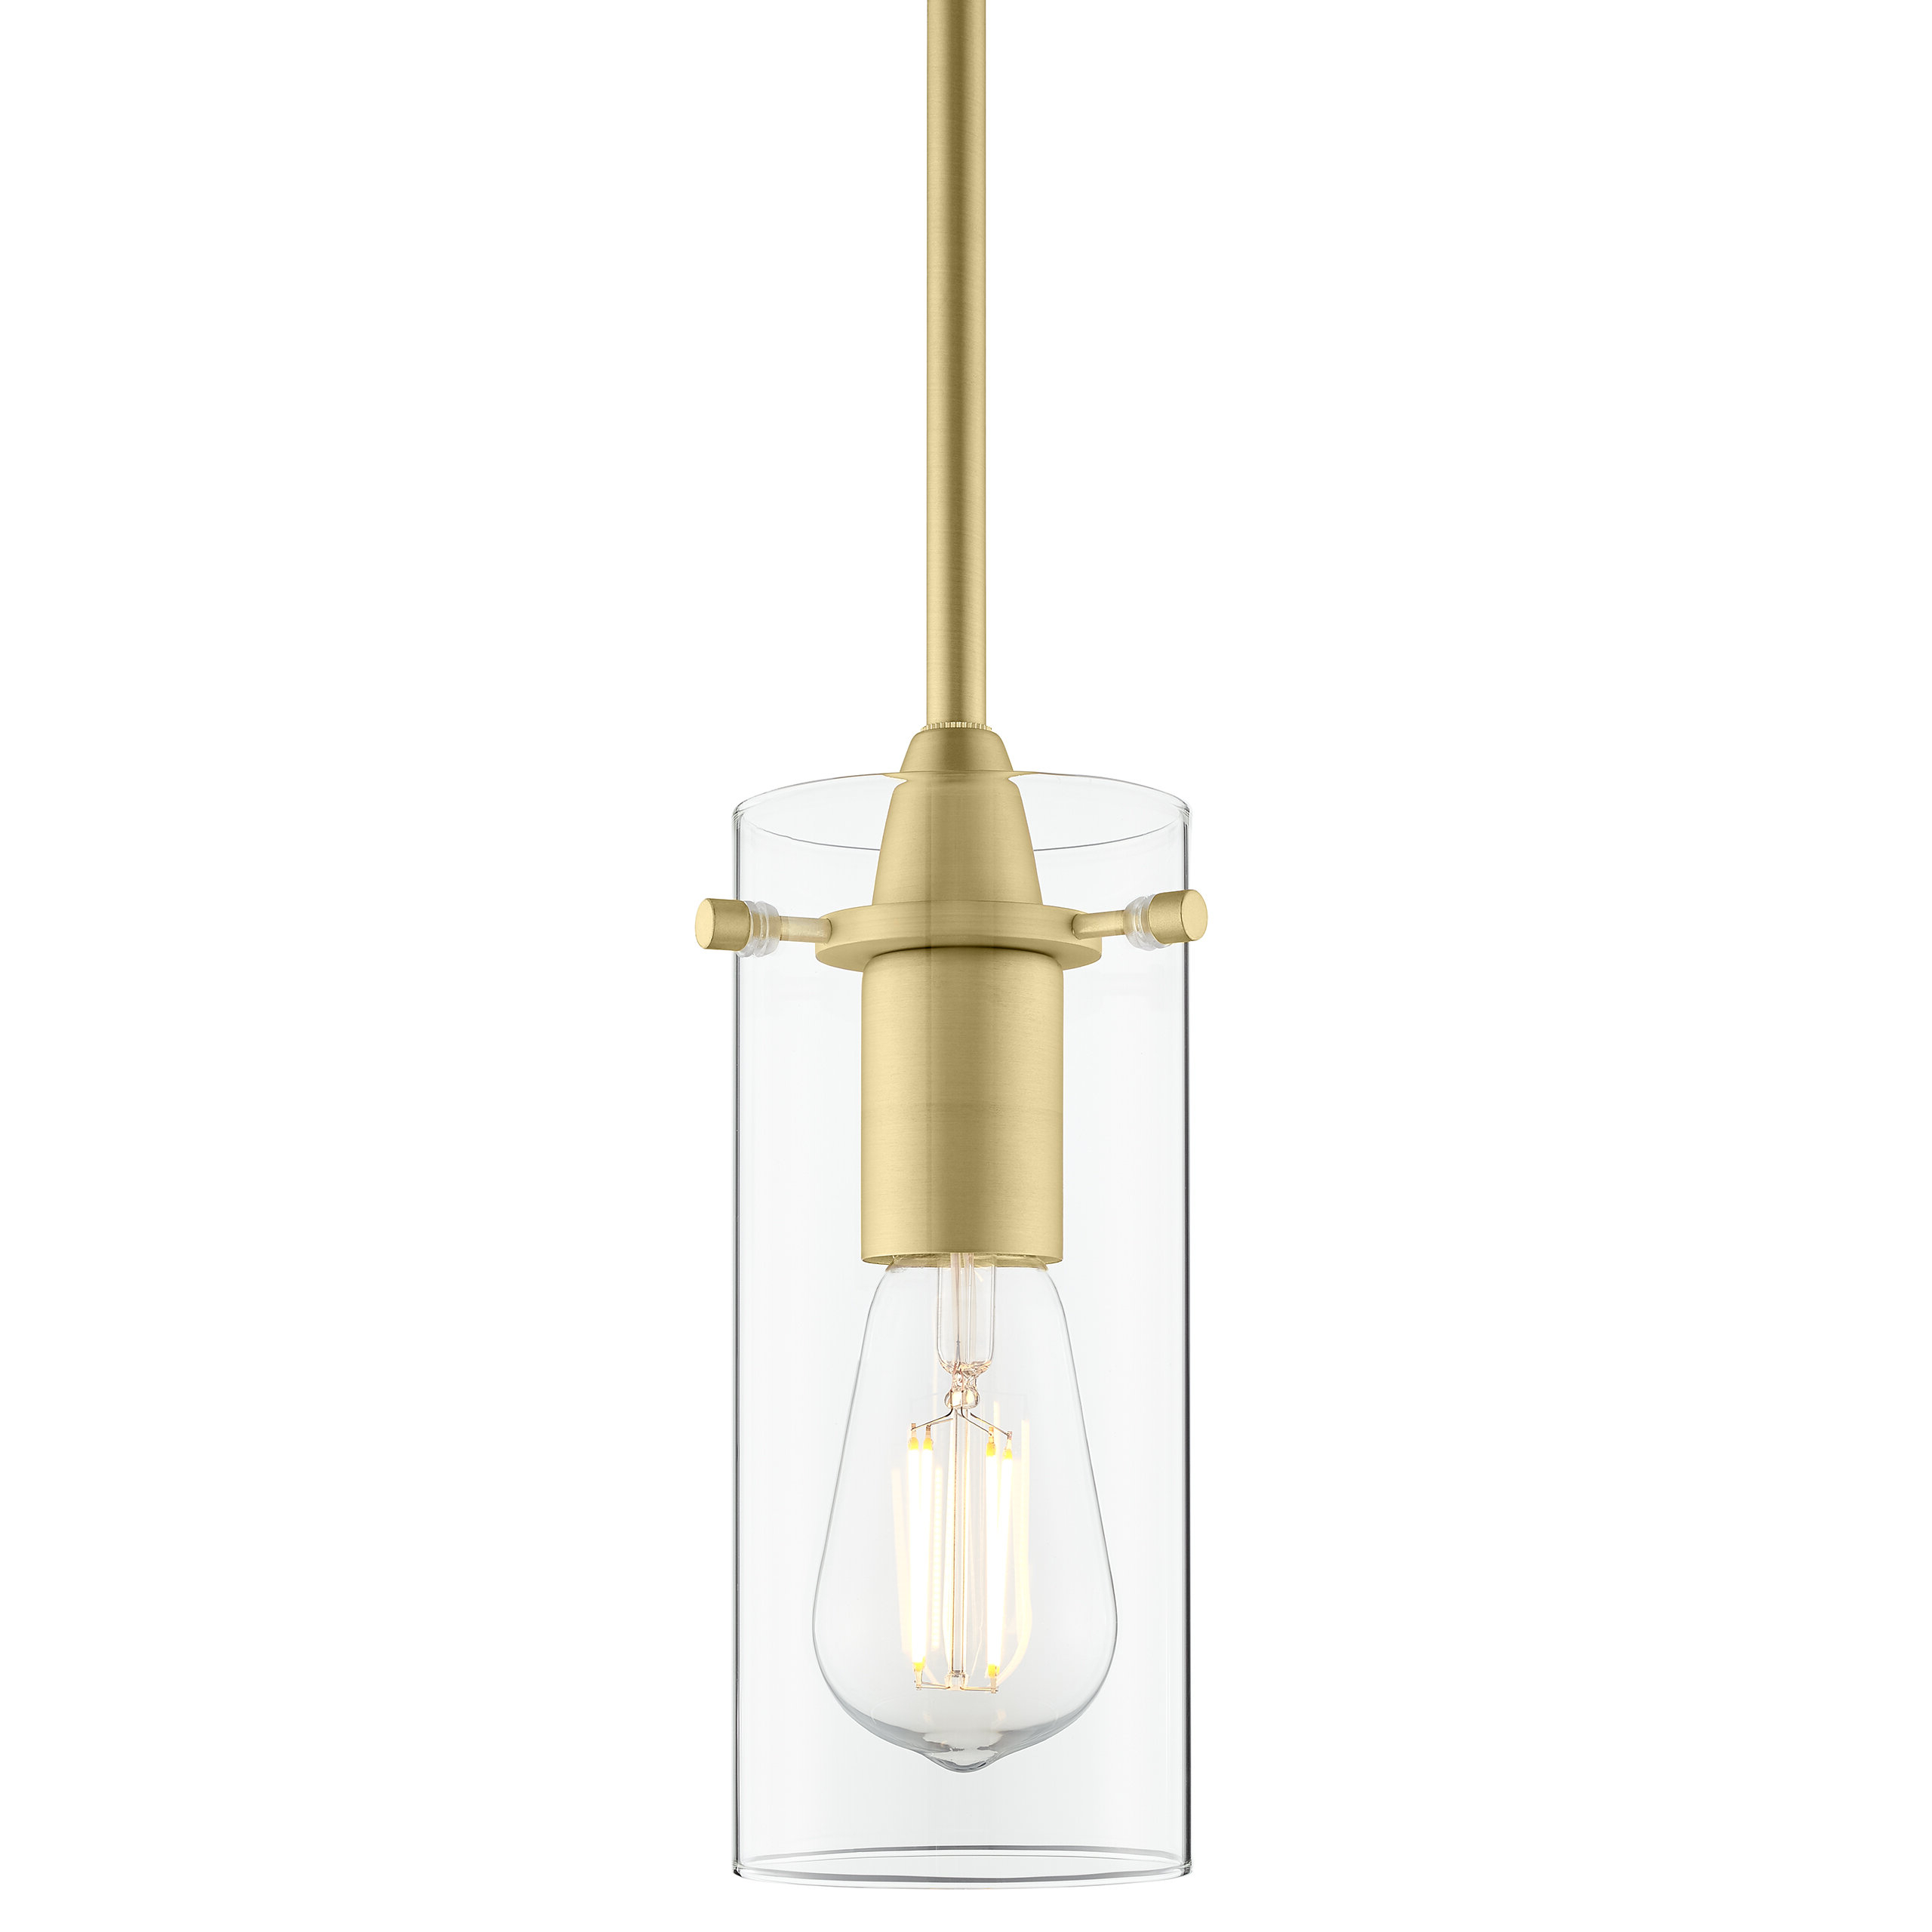 Ivy Bronx Angelina 1 Light Cylinder Pendant With Regard To Popular Jayce 1 Light Cylinder Pendants (View 6 of 25)